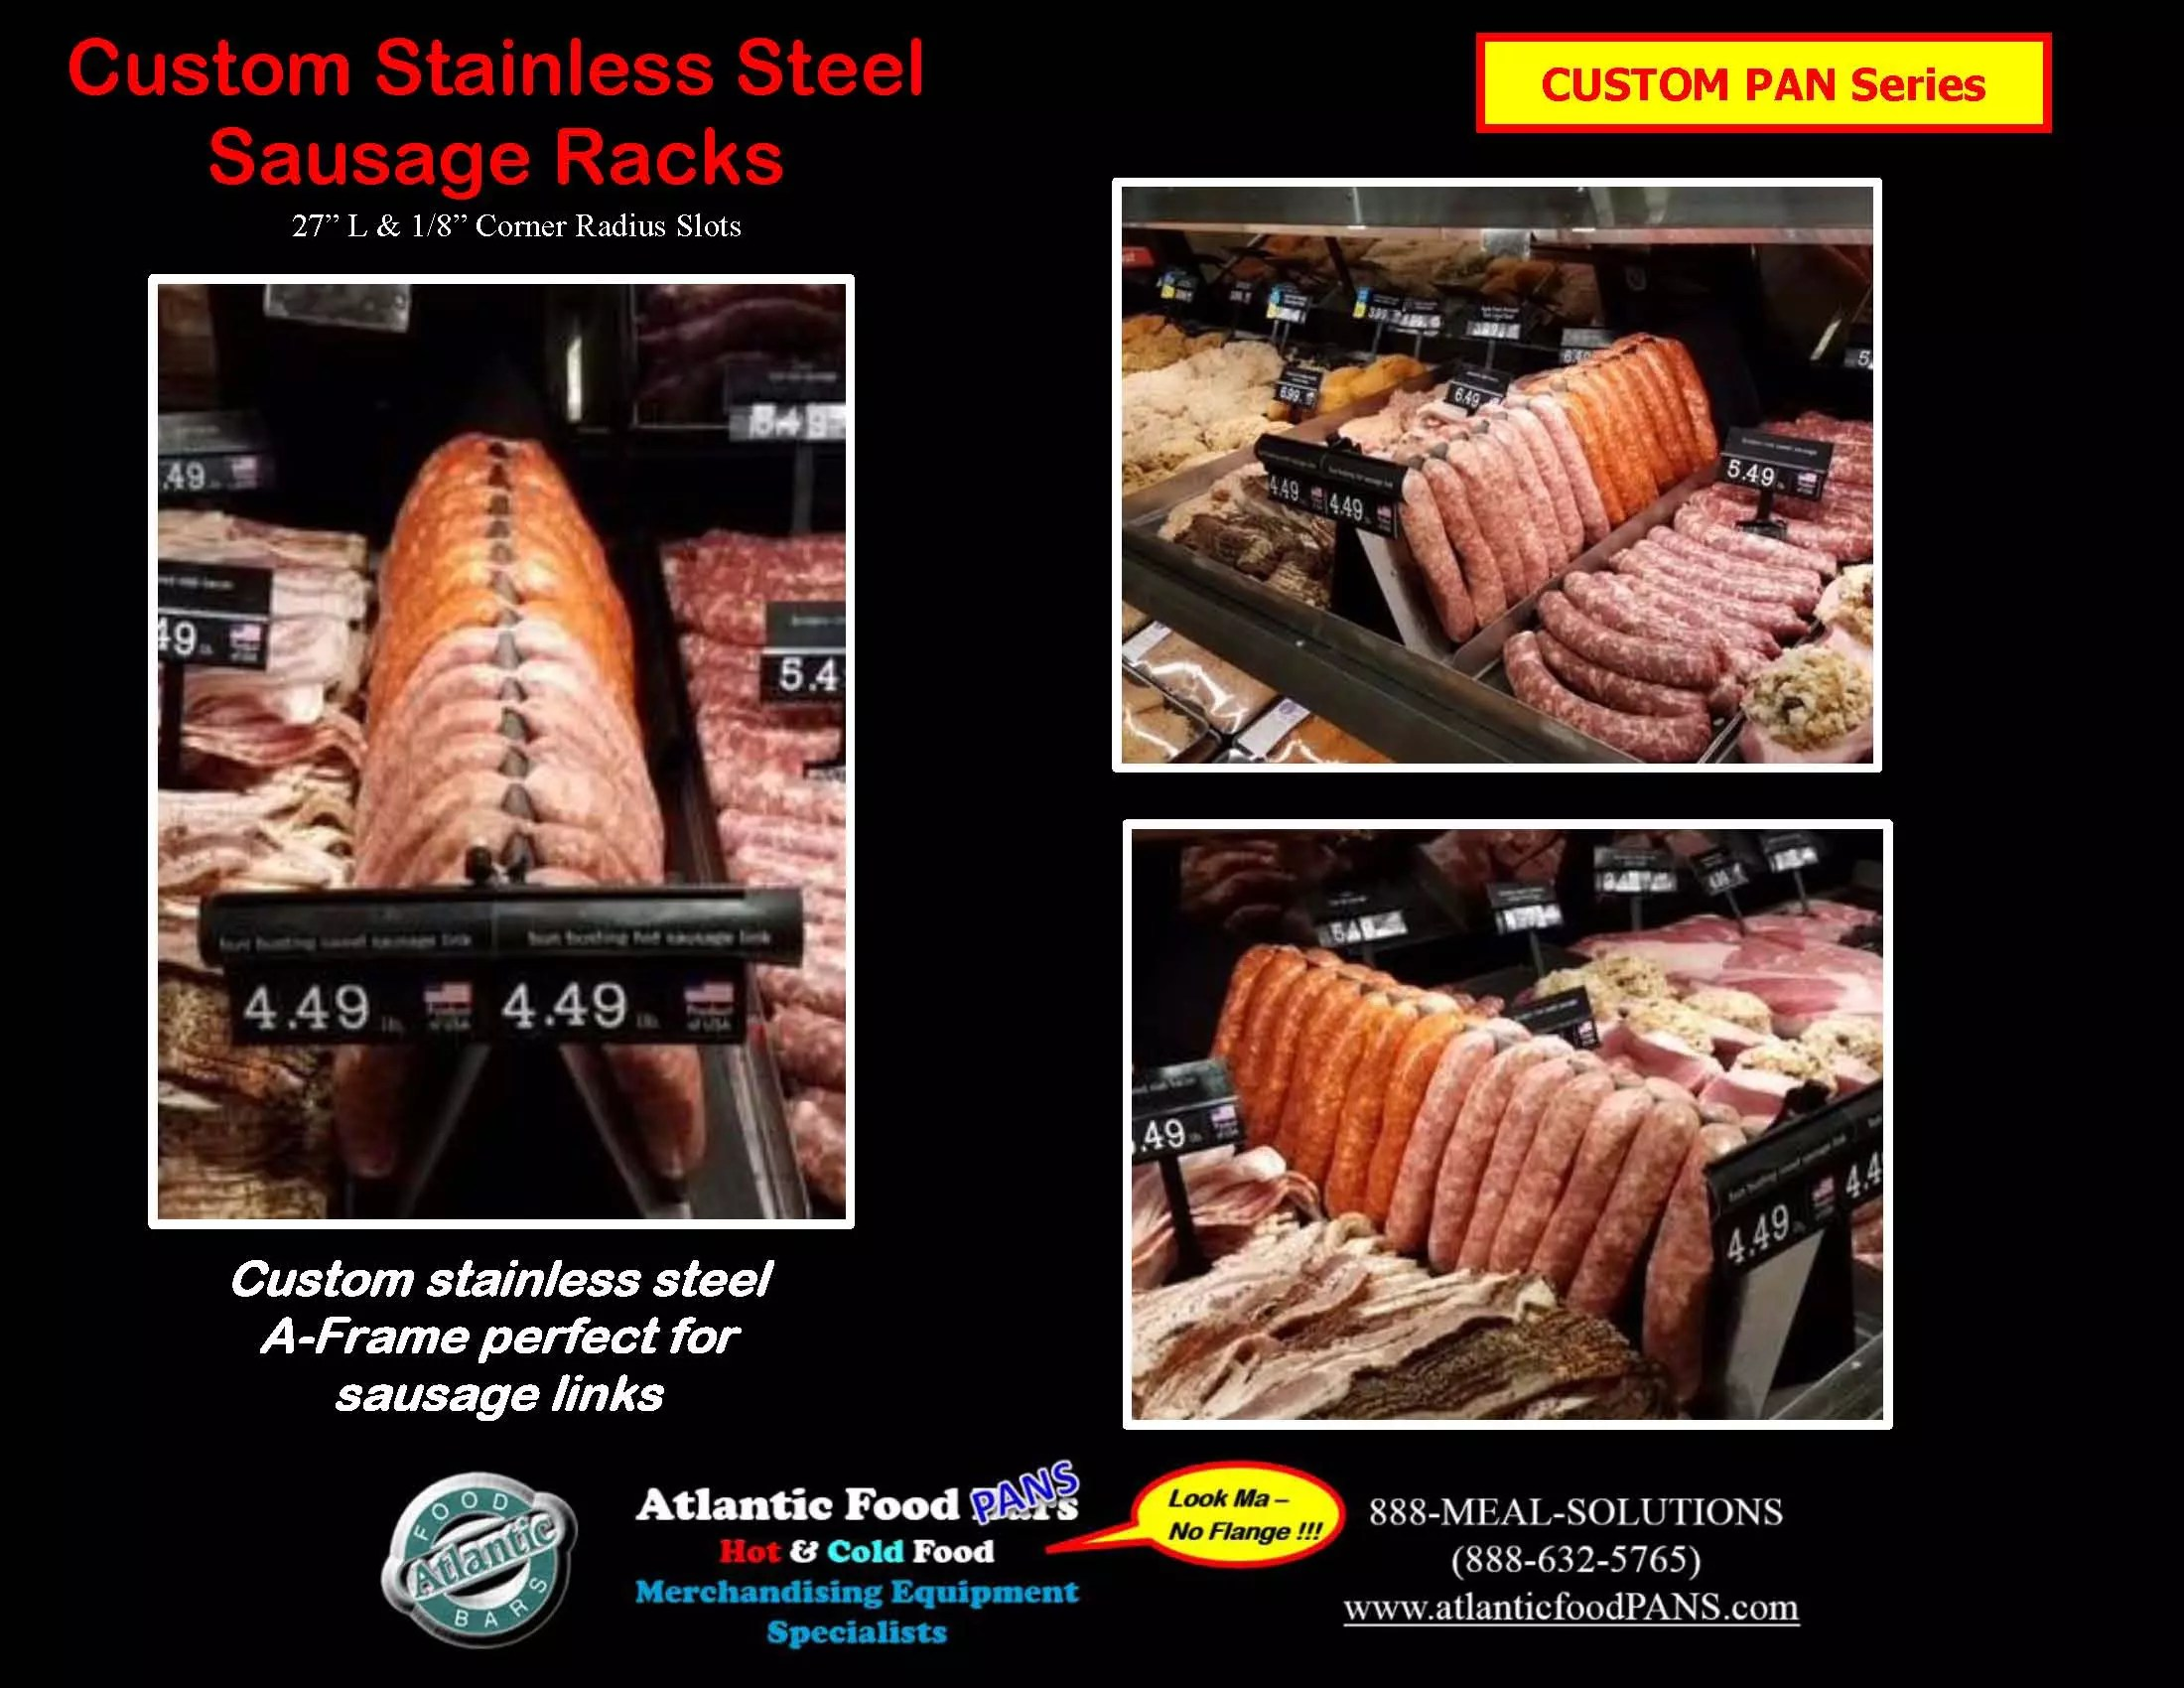 Atlantic Food Bars - Custom Stainless Steel Sausage Racks for Meat Cases_Page_1